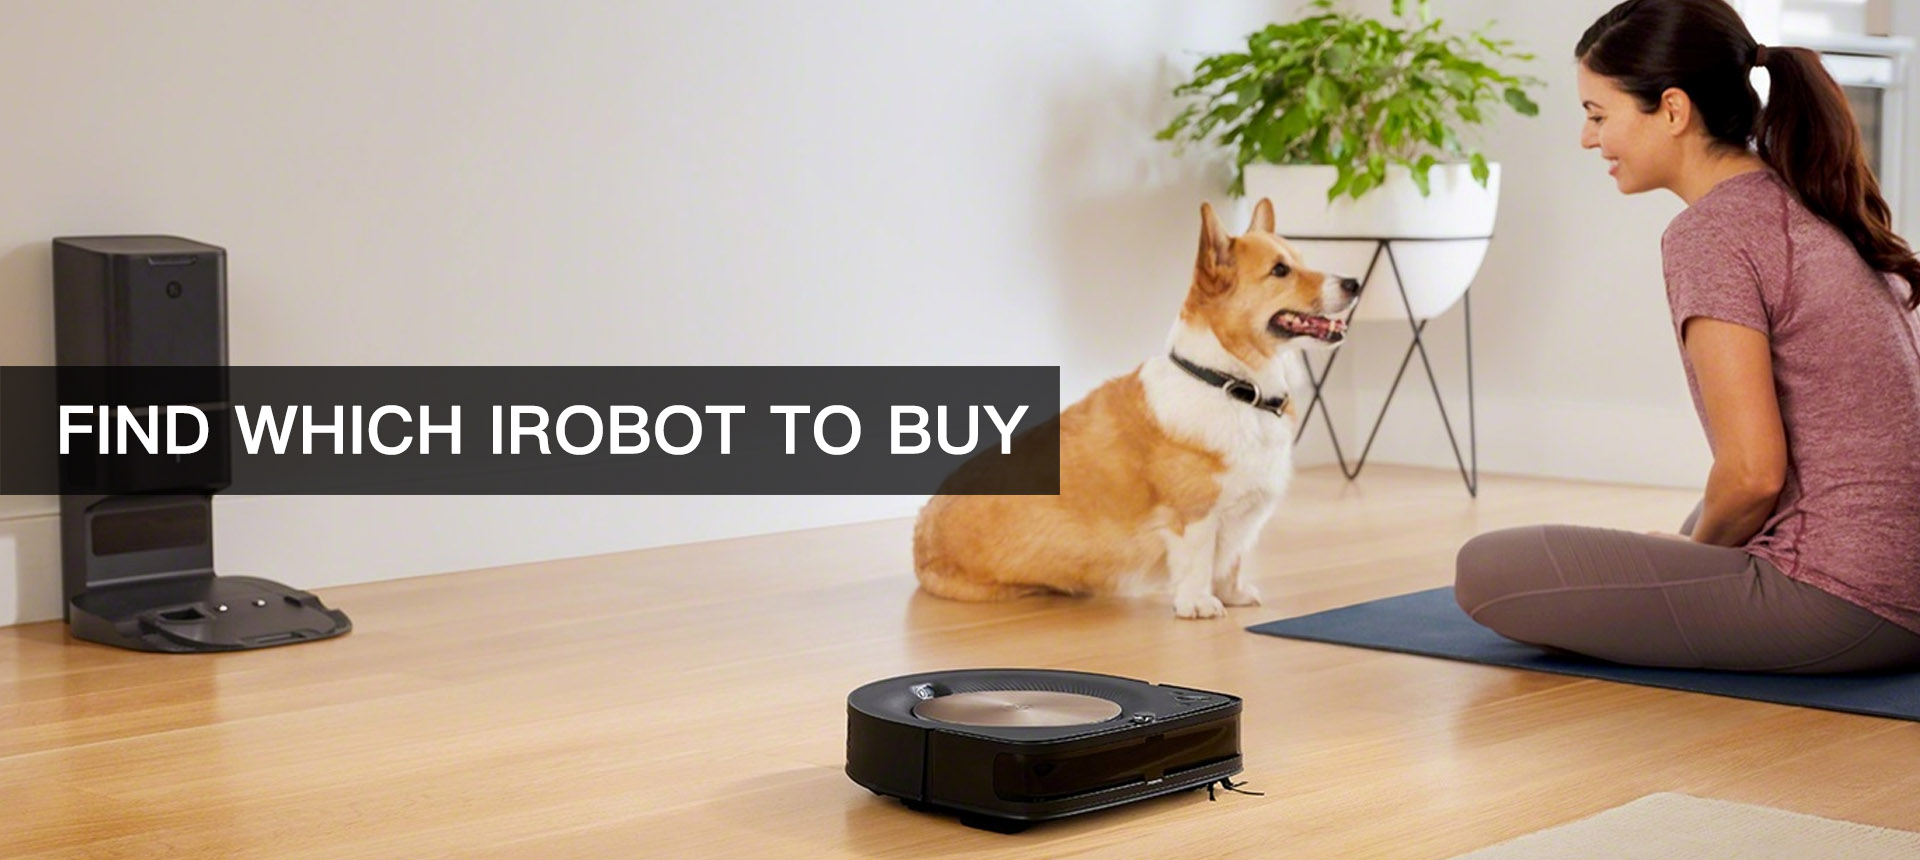 Find Which iRobot To Buy